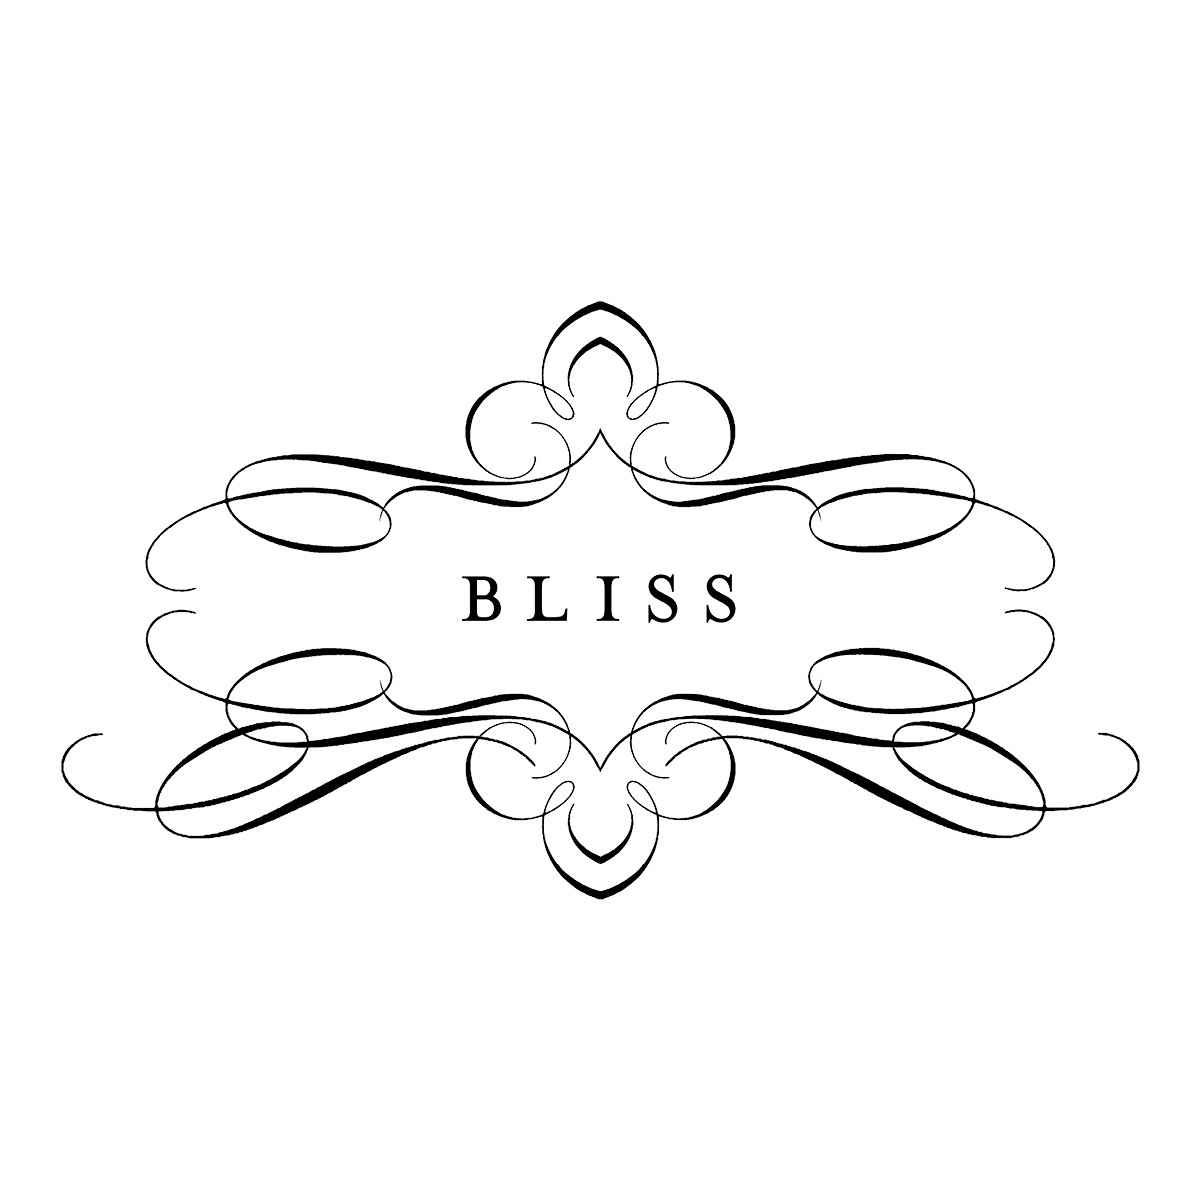 bliss-logo-for-web.jpg